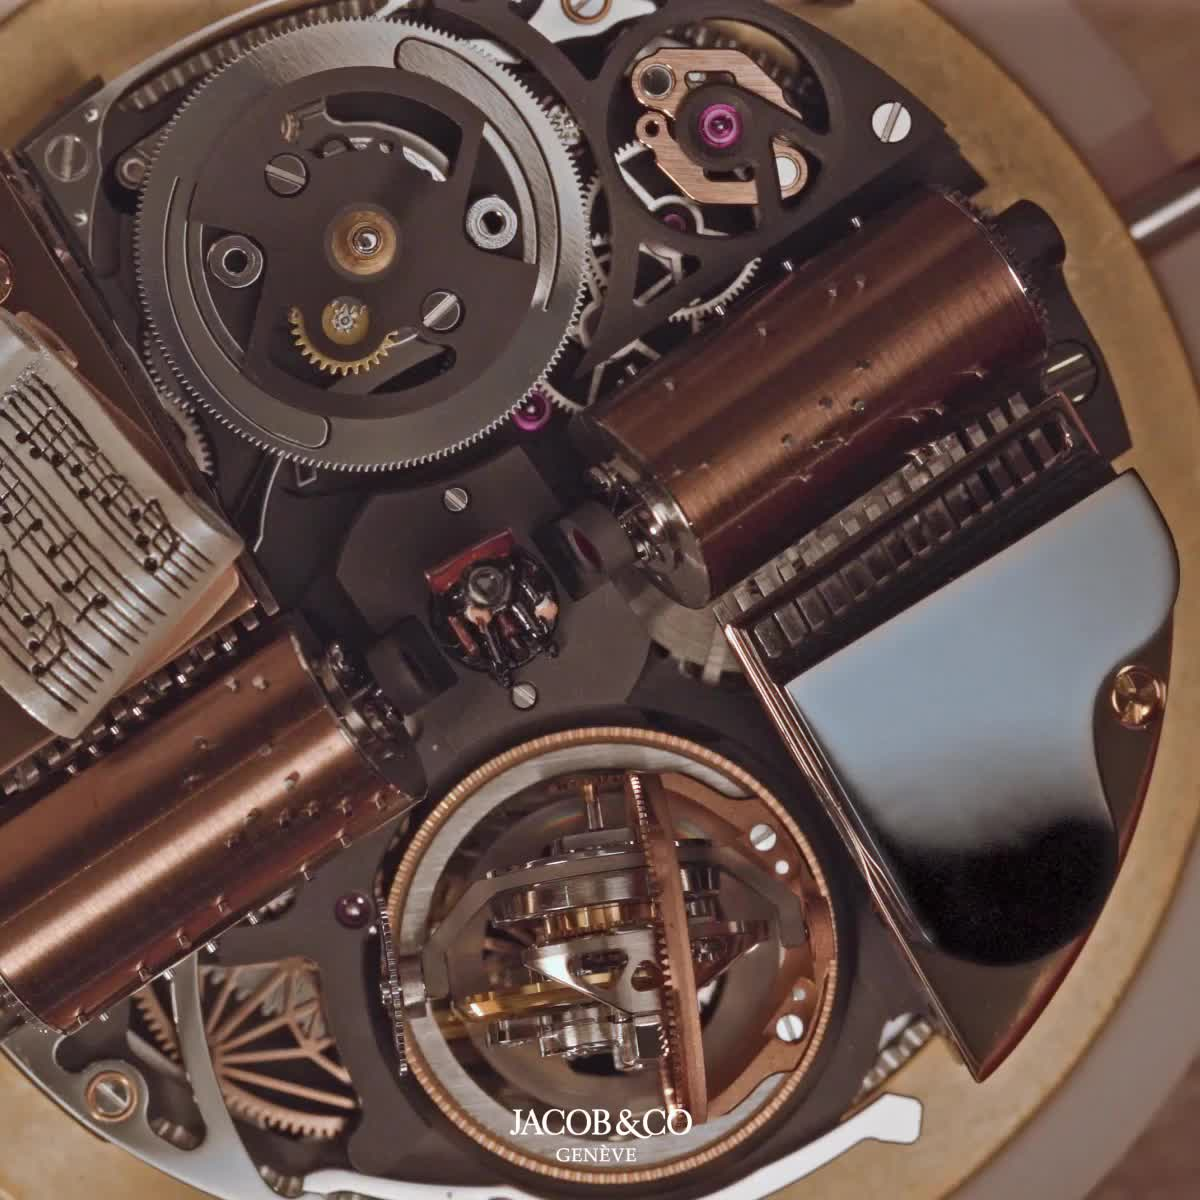 Godfather, Jacob & Co, Jacob&Co, Monochrome Watches, Opera, automaton, chiming watch, high-end watch, tourbillon, triple axis tourbillon, Jacob & Co Opera Godfather Edition GIFs